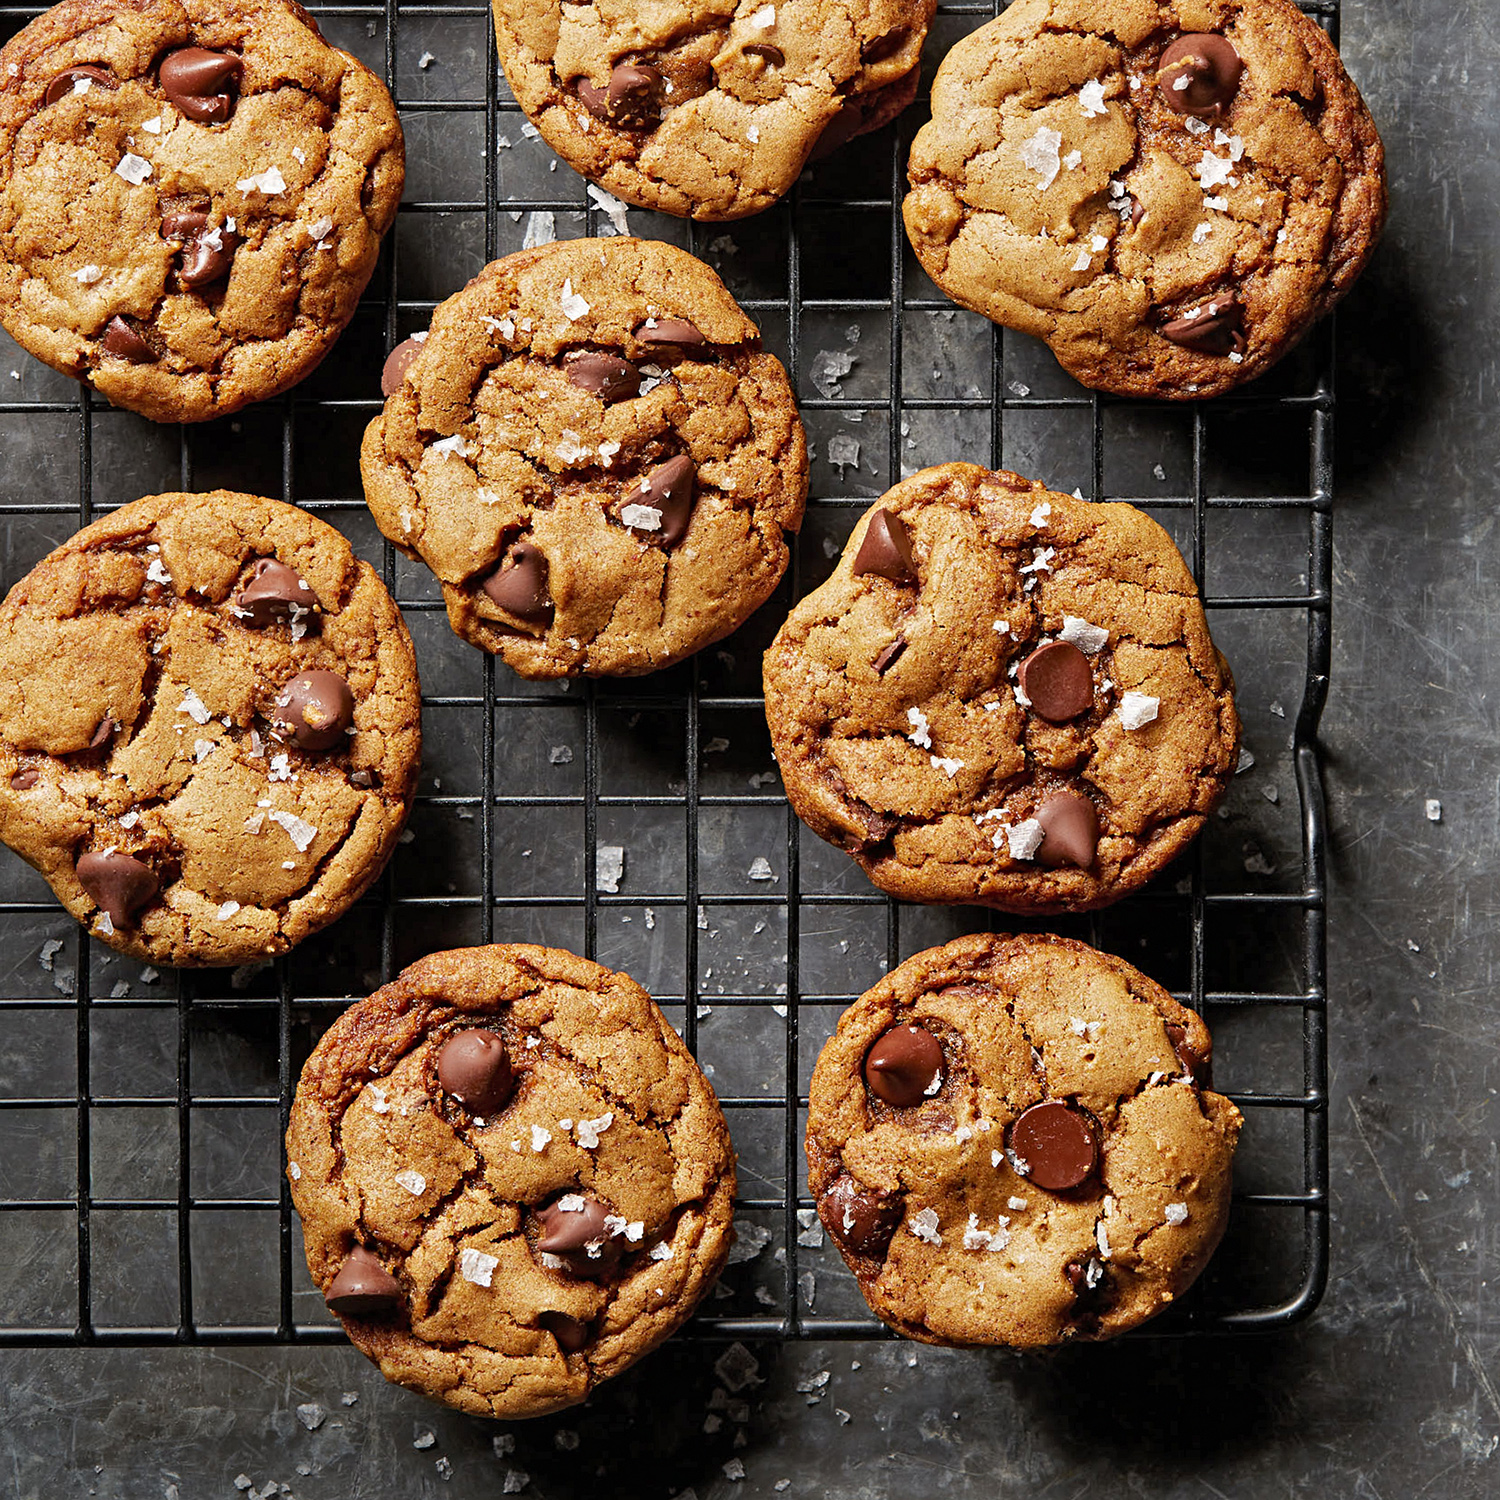 vegan chocolate chip and ancho chile cookies